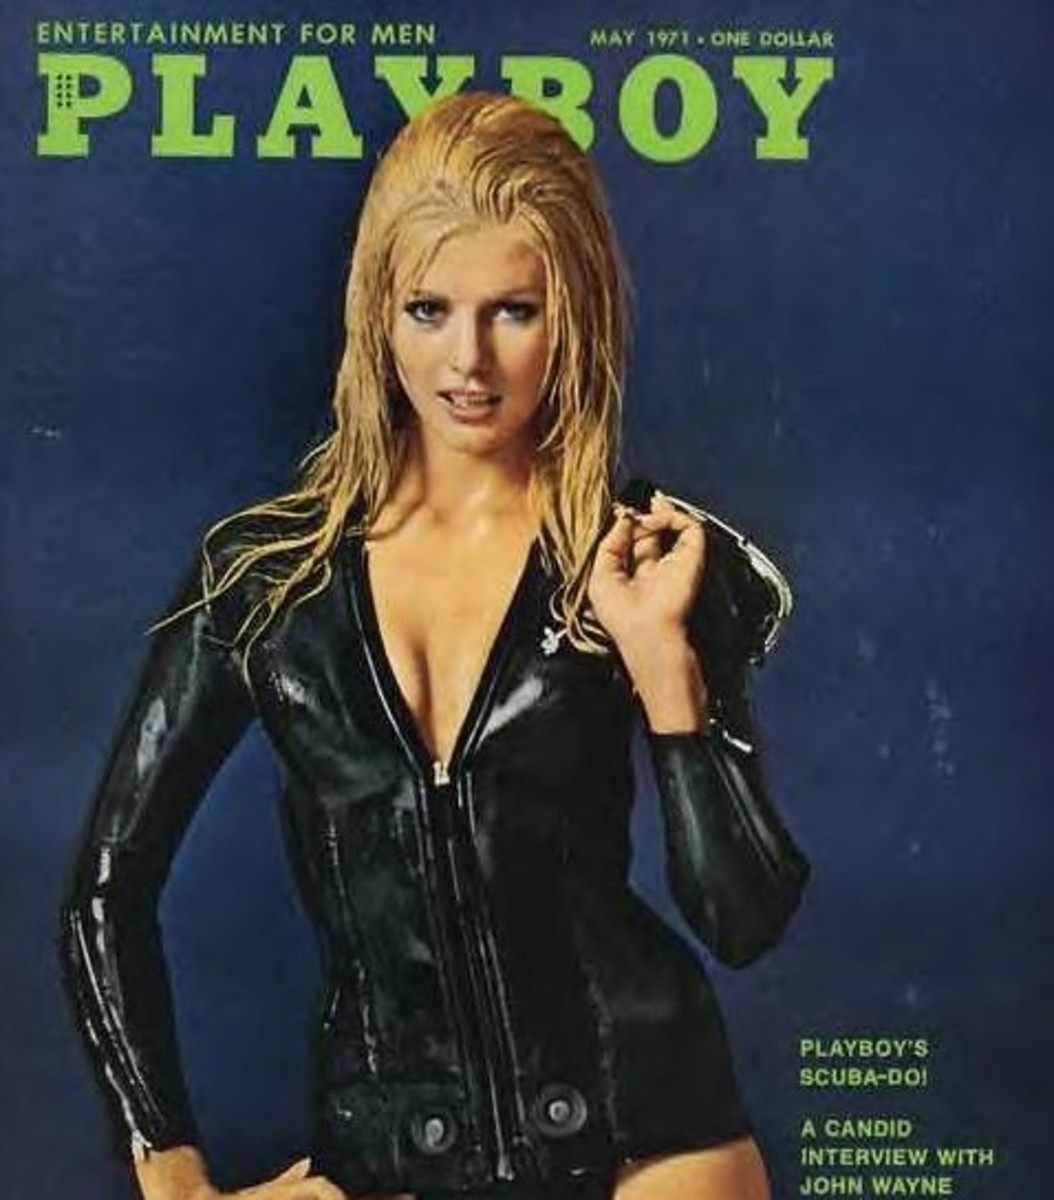 Playboy May 1971 Current Approx Value: $20.00